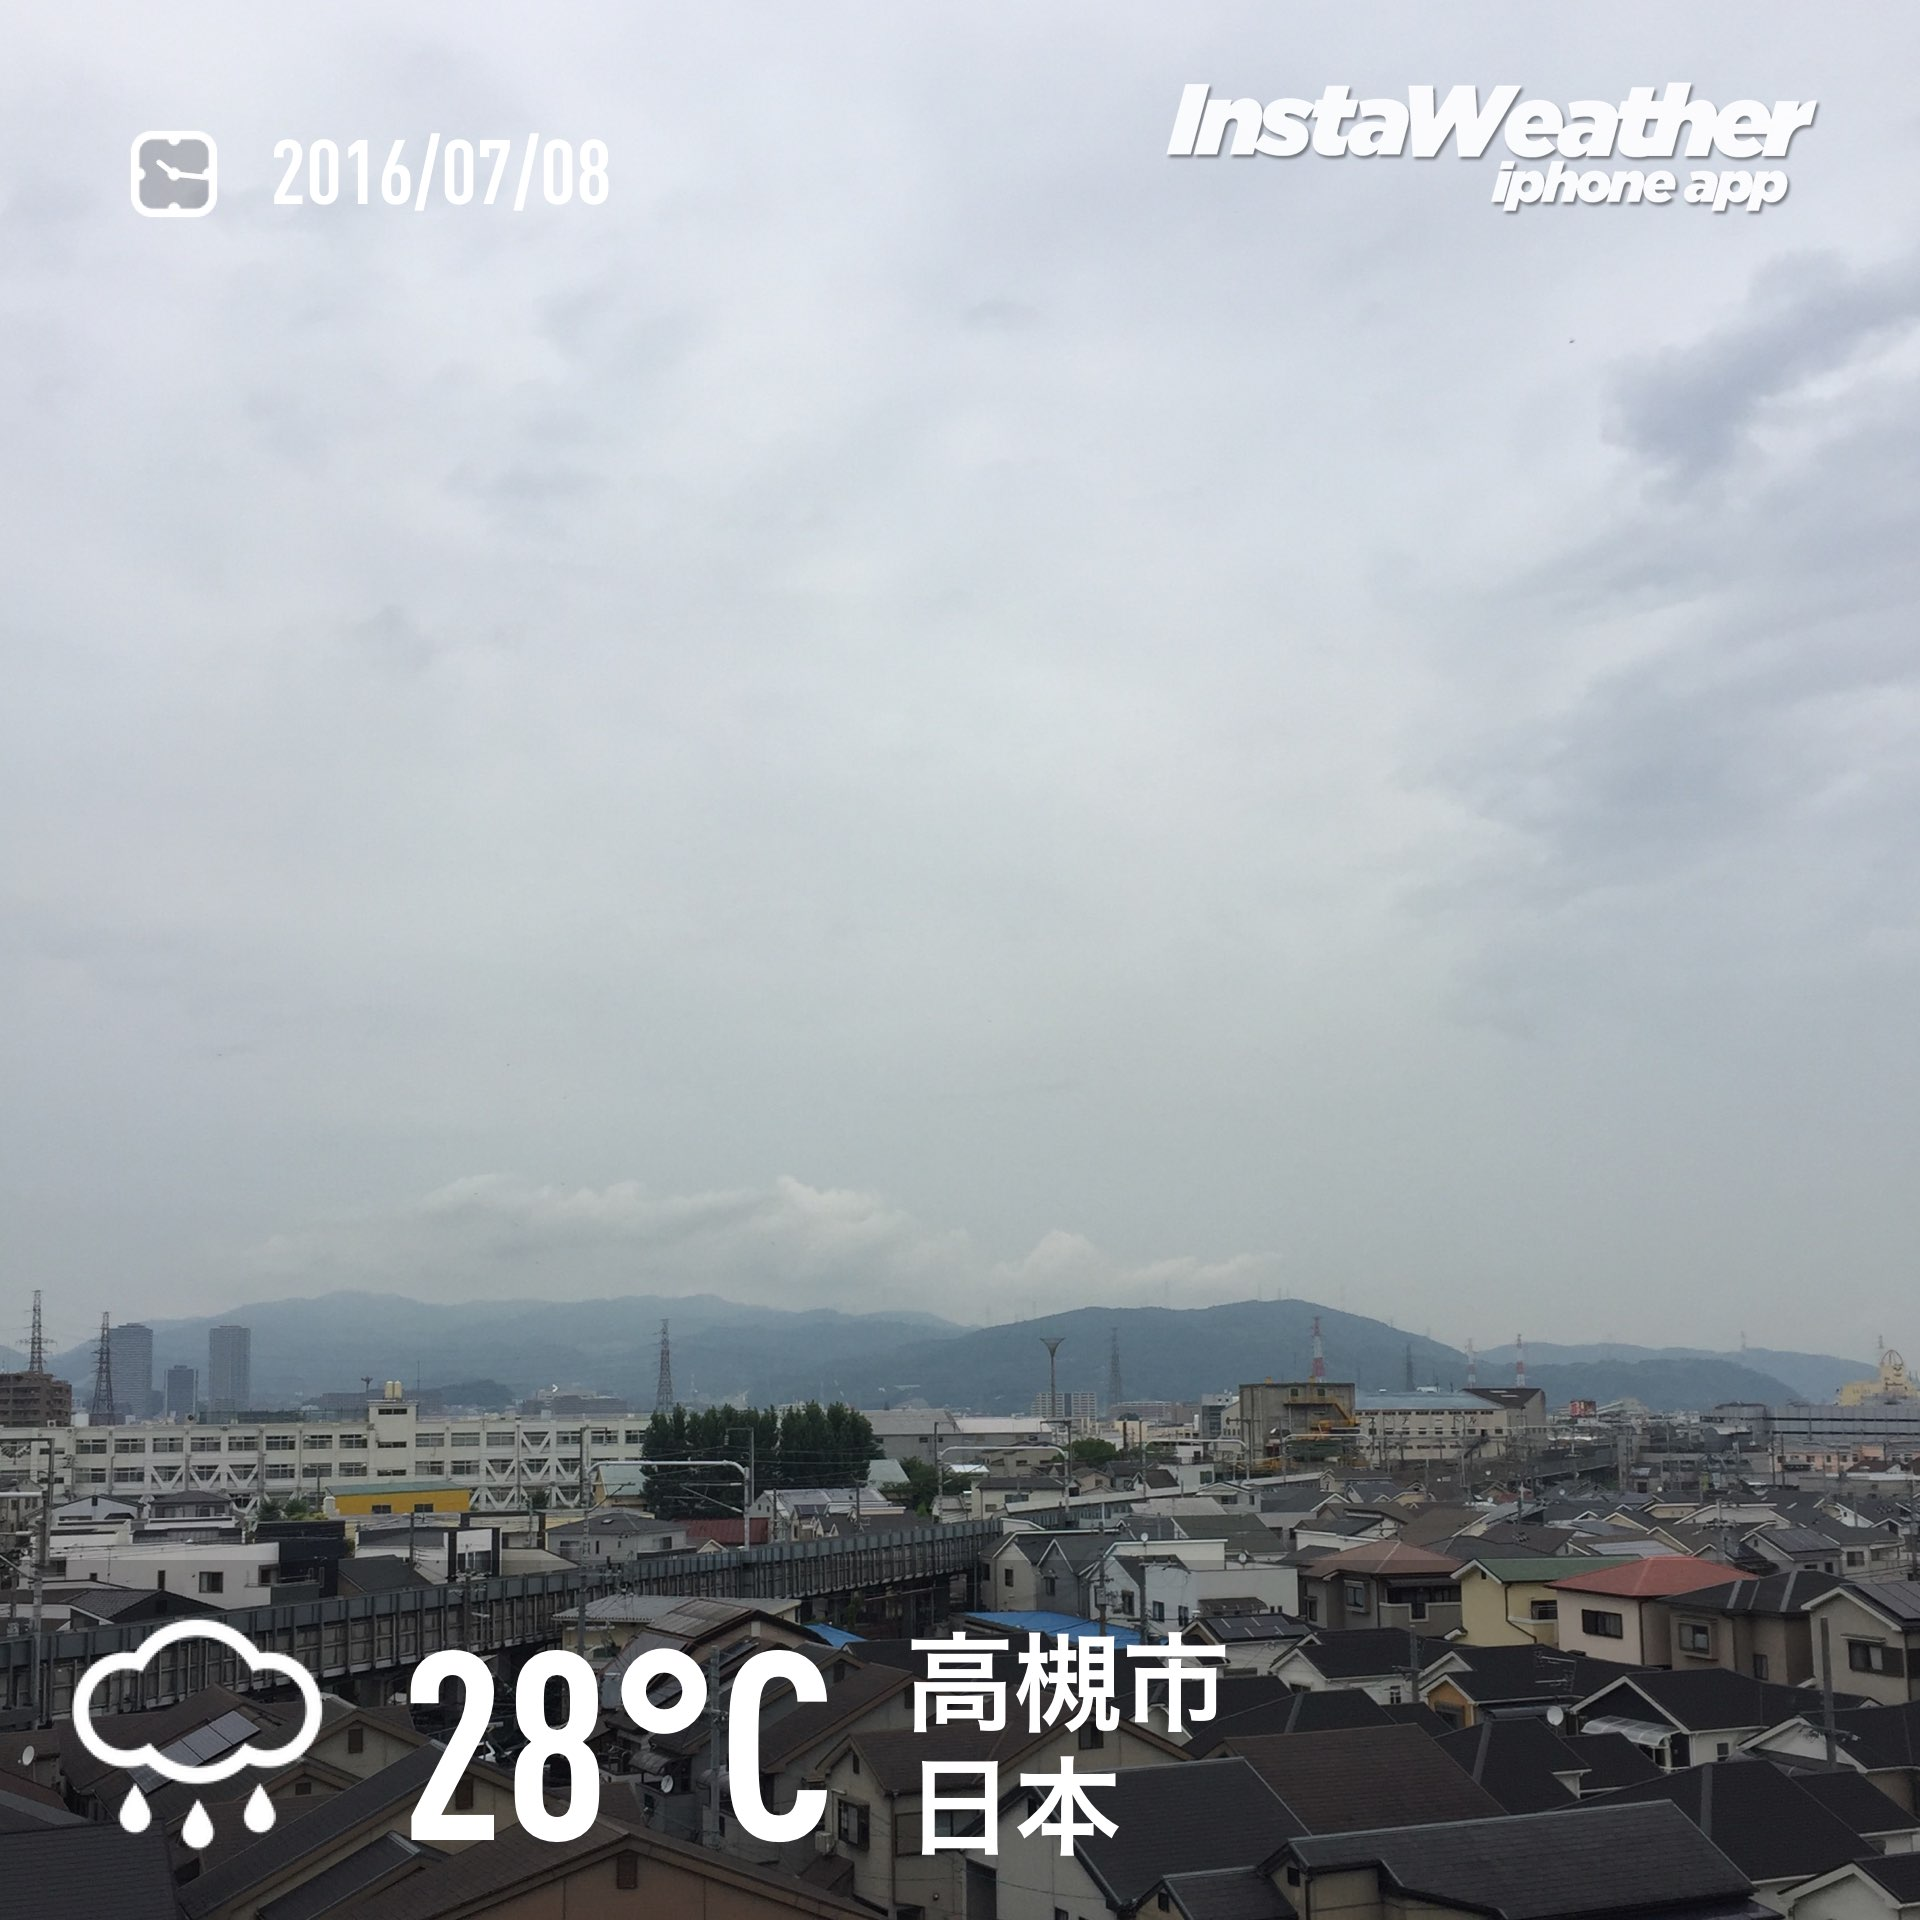 A Message from instaweather